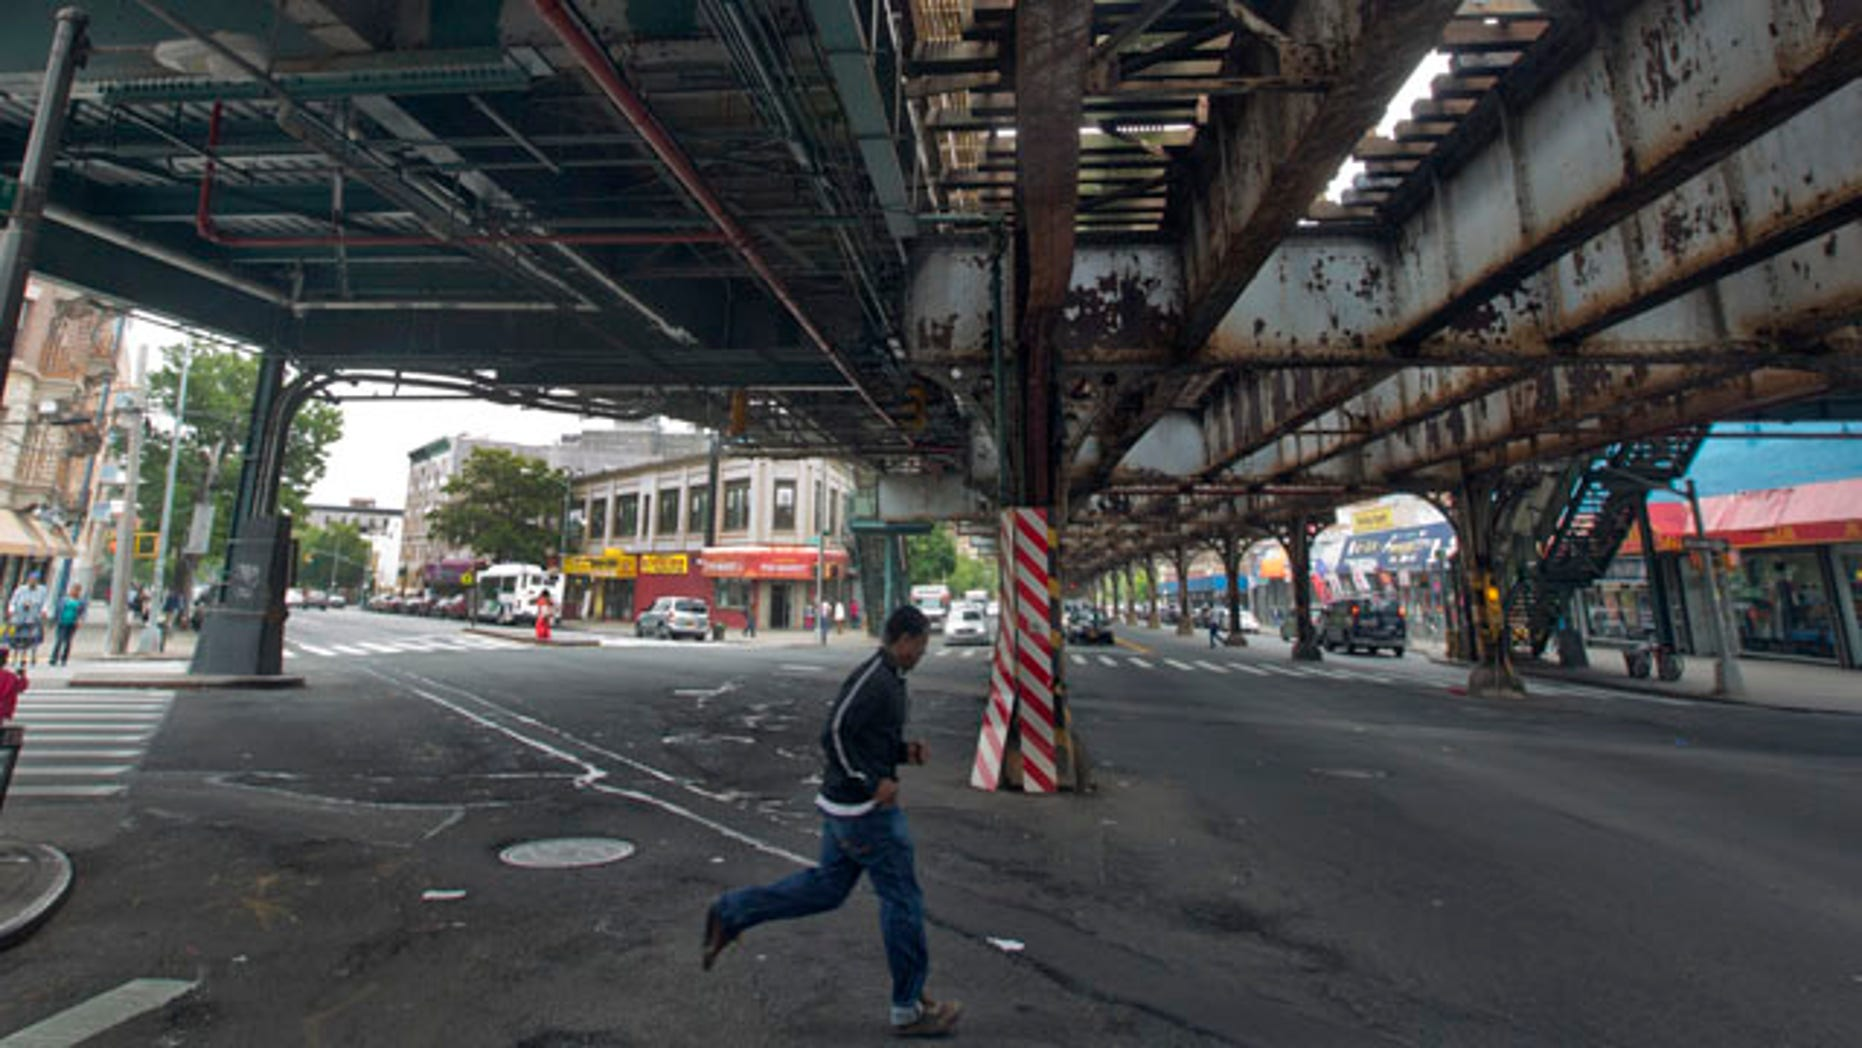 May 22, 2013: A young man runs under an elevated section of subway tracks in The Bronx borough of New York.